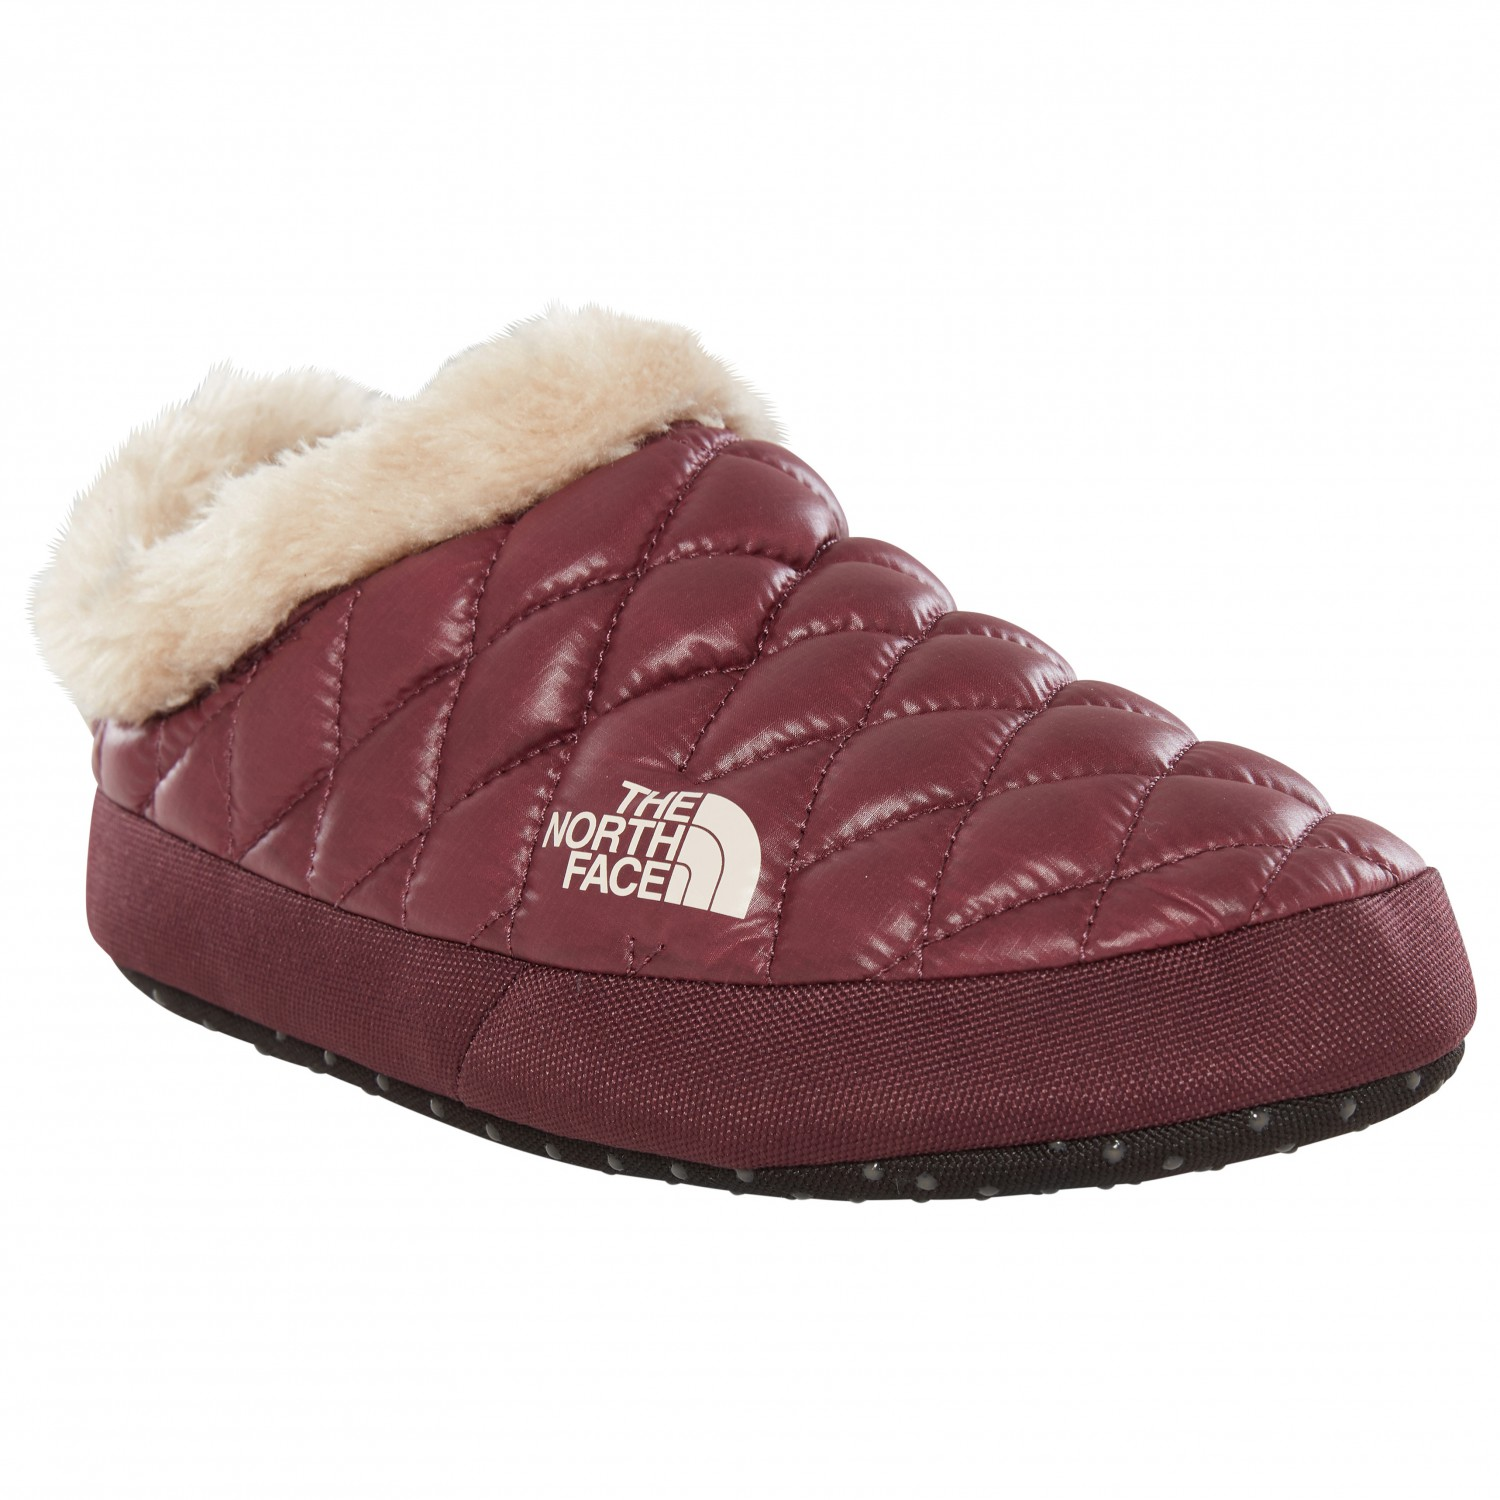 a072e7899 The North Face - Women's Thermoball Tent Mule Faux Fur IV - Slippers